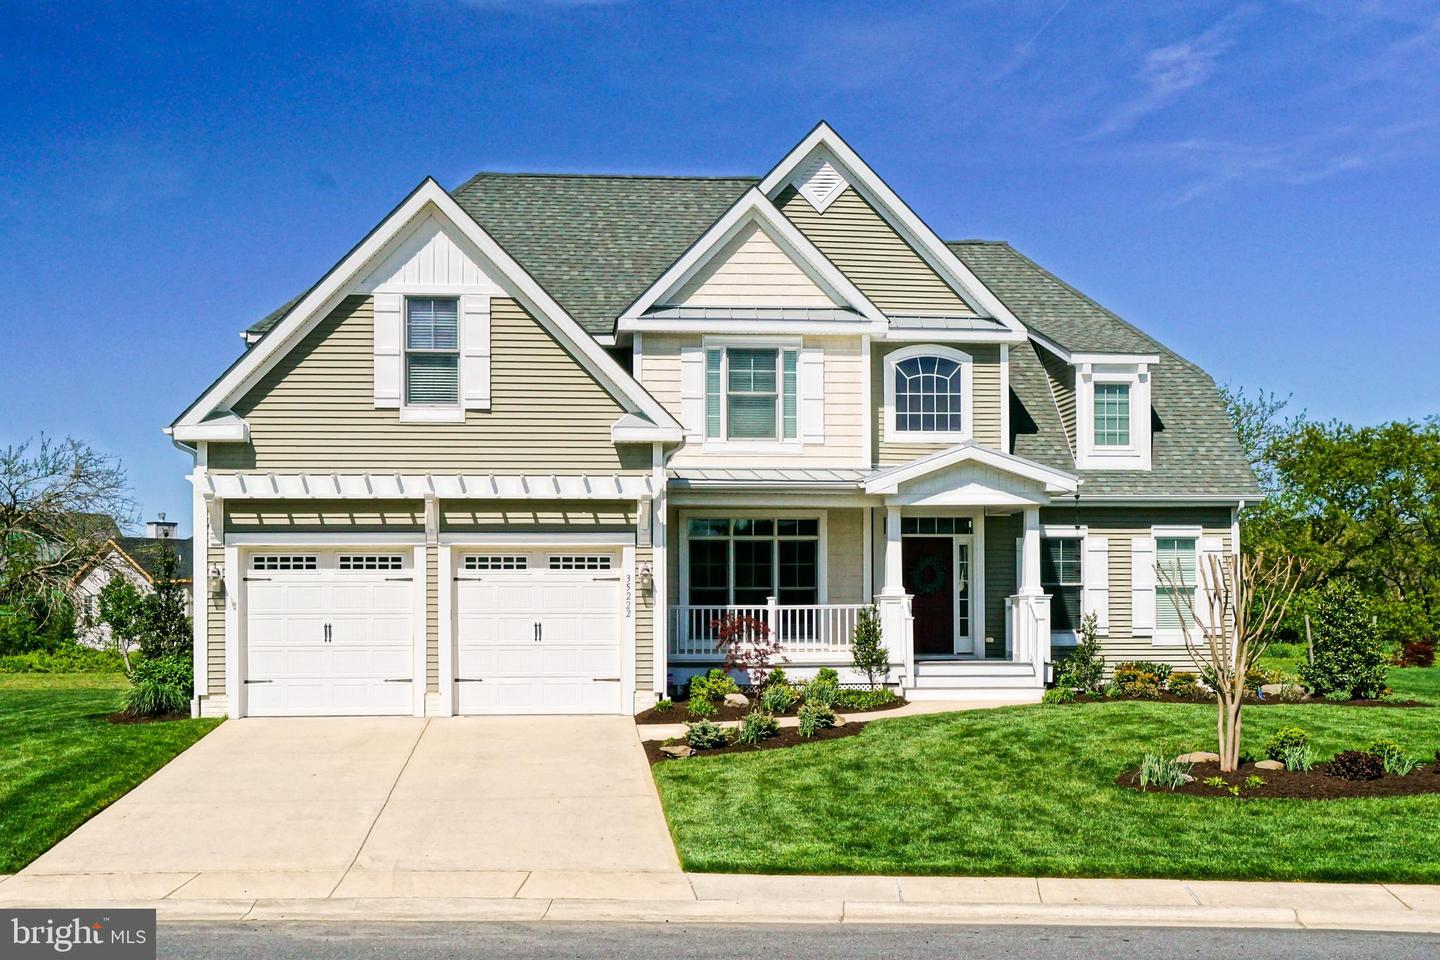 DESU139128-301667380905-2019-08-05-10-43-56 35222 Overfalls Dr N | Lewes, DE Real Estate For Sale | MLS# Desu139128  - Lee Ann Group